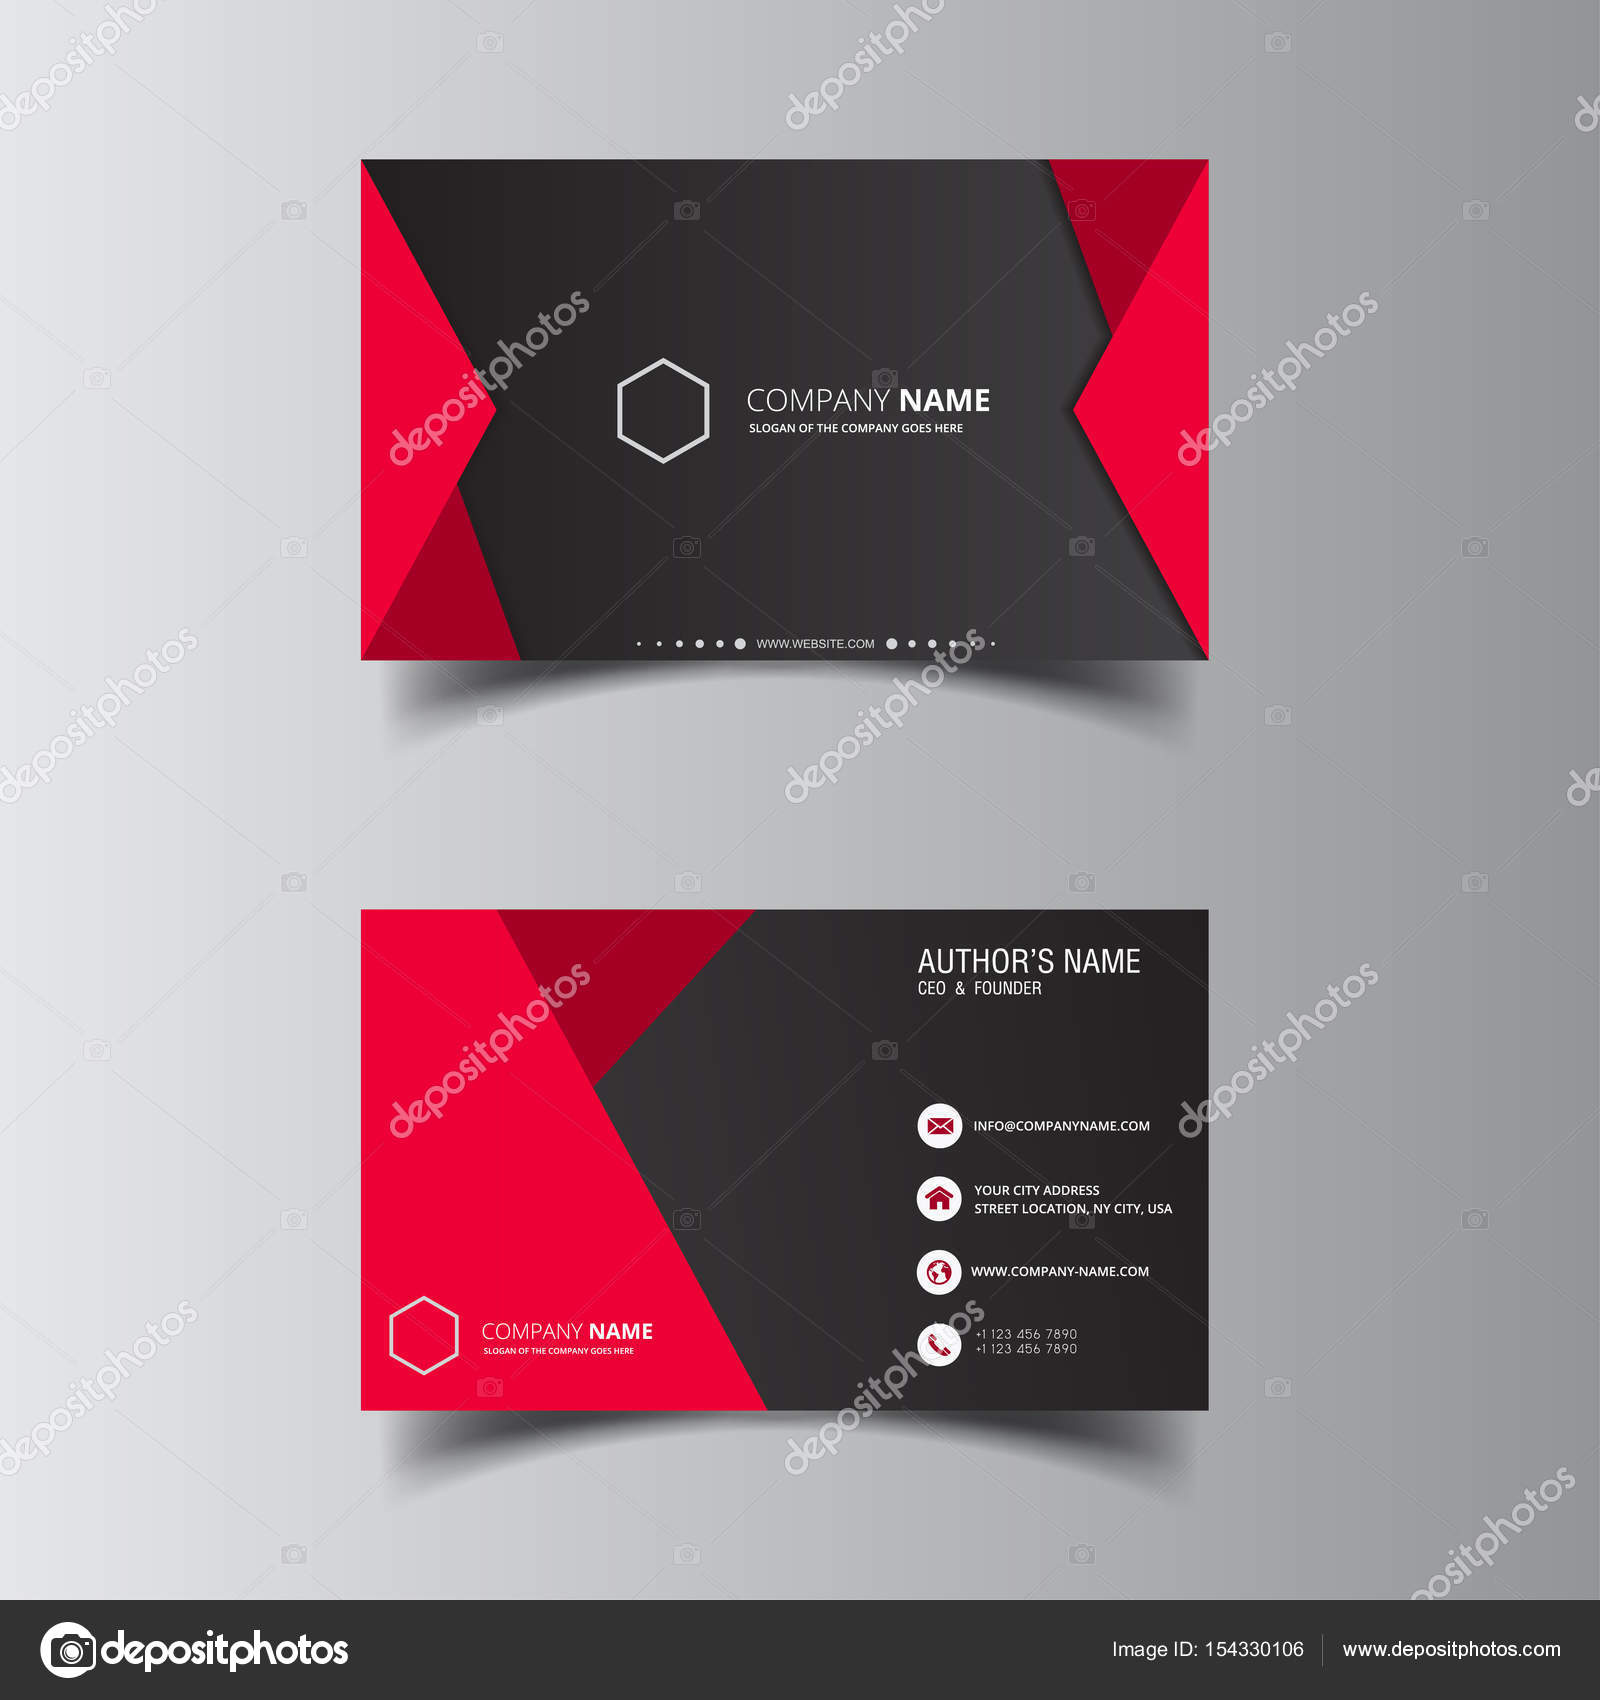 Vector design formal red modern business card — Stock Vector ...